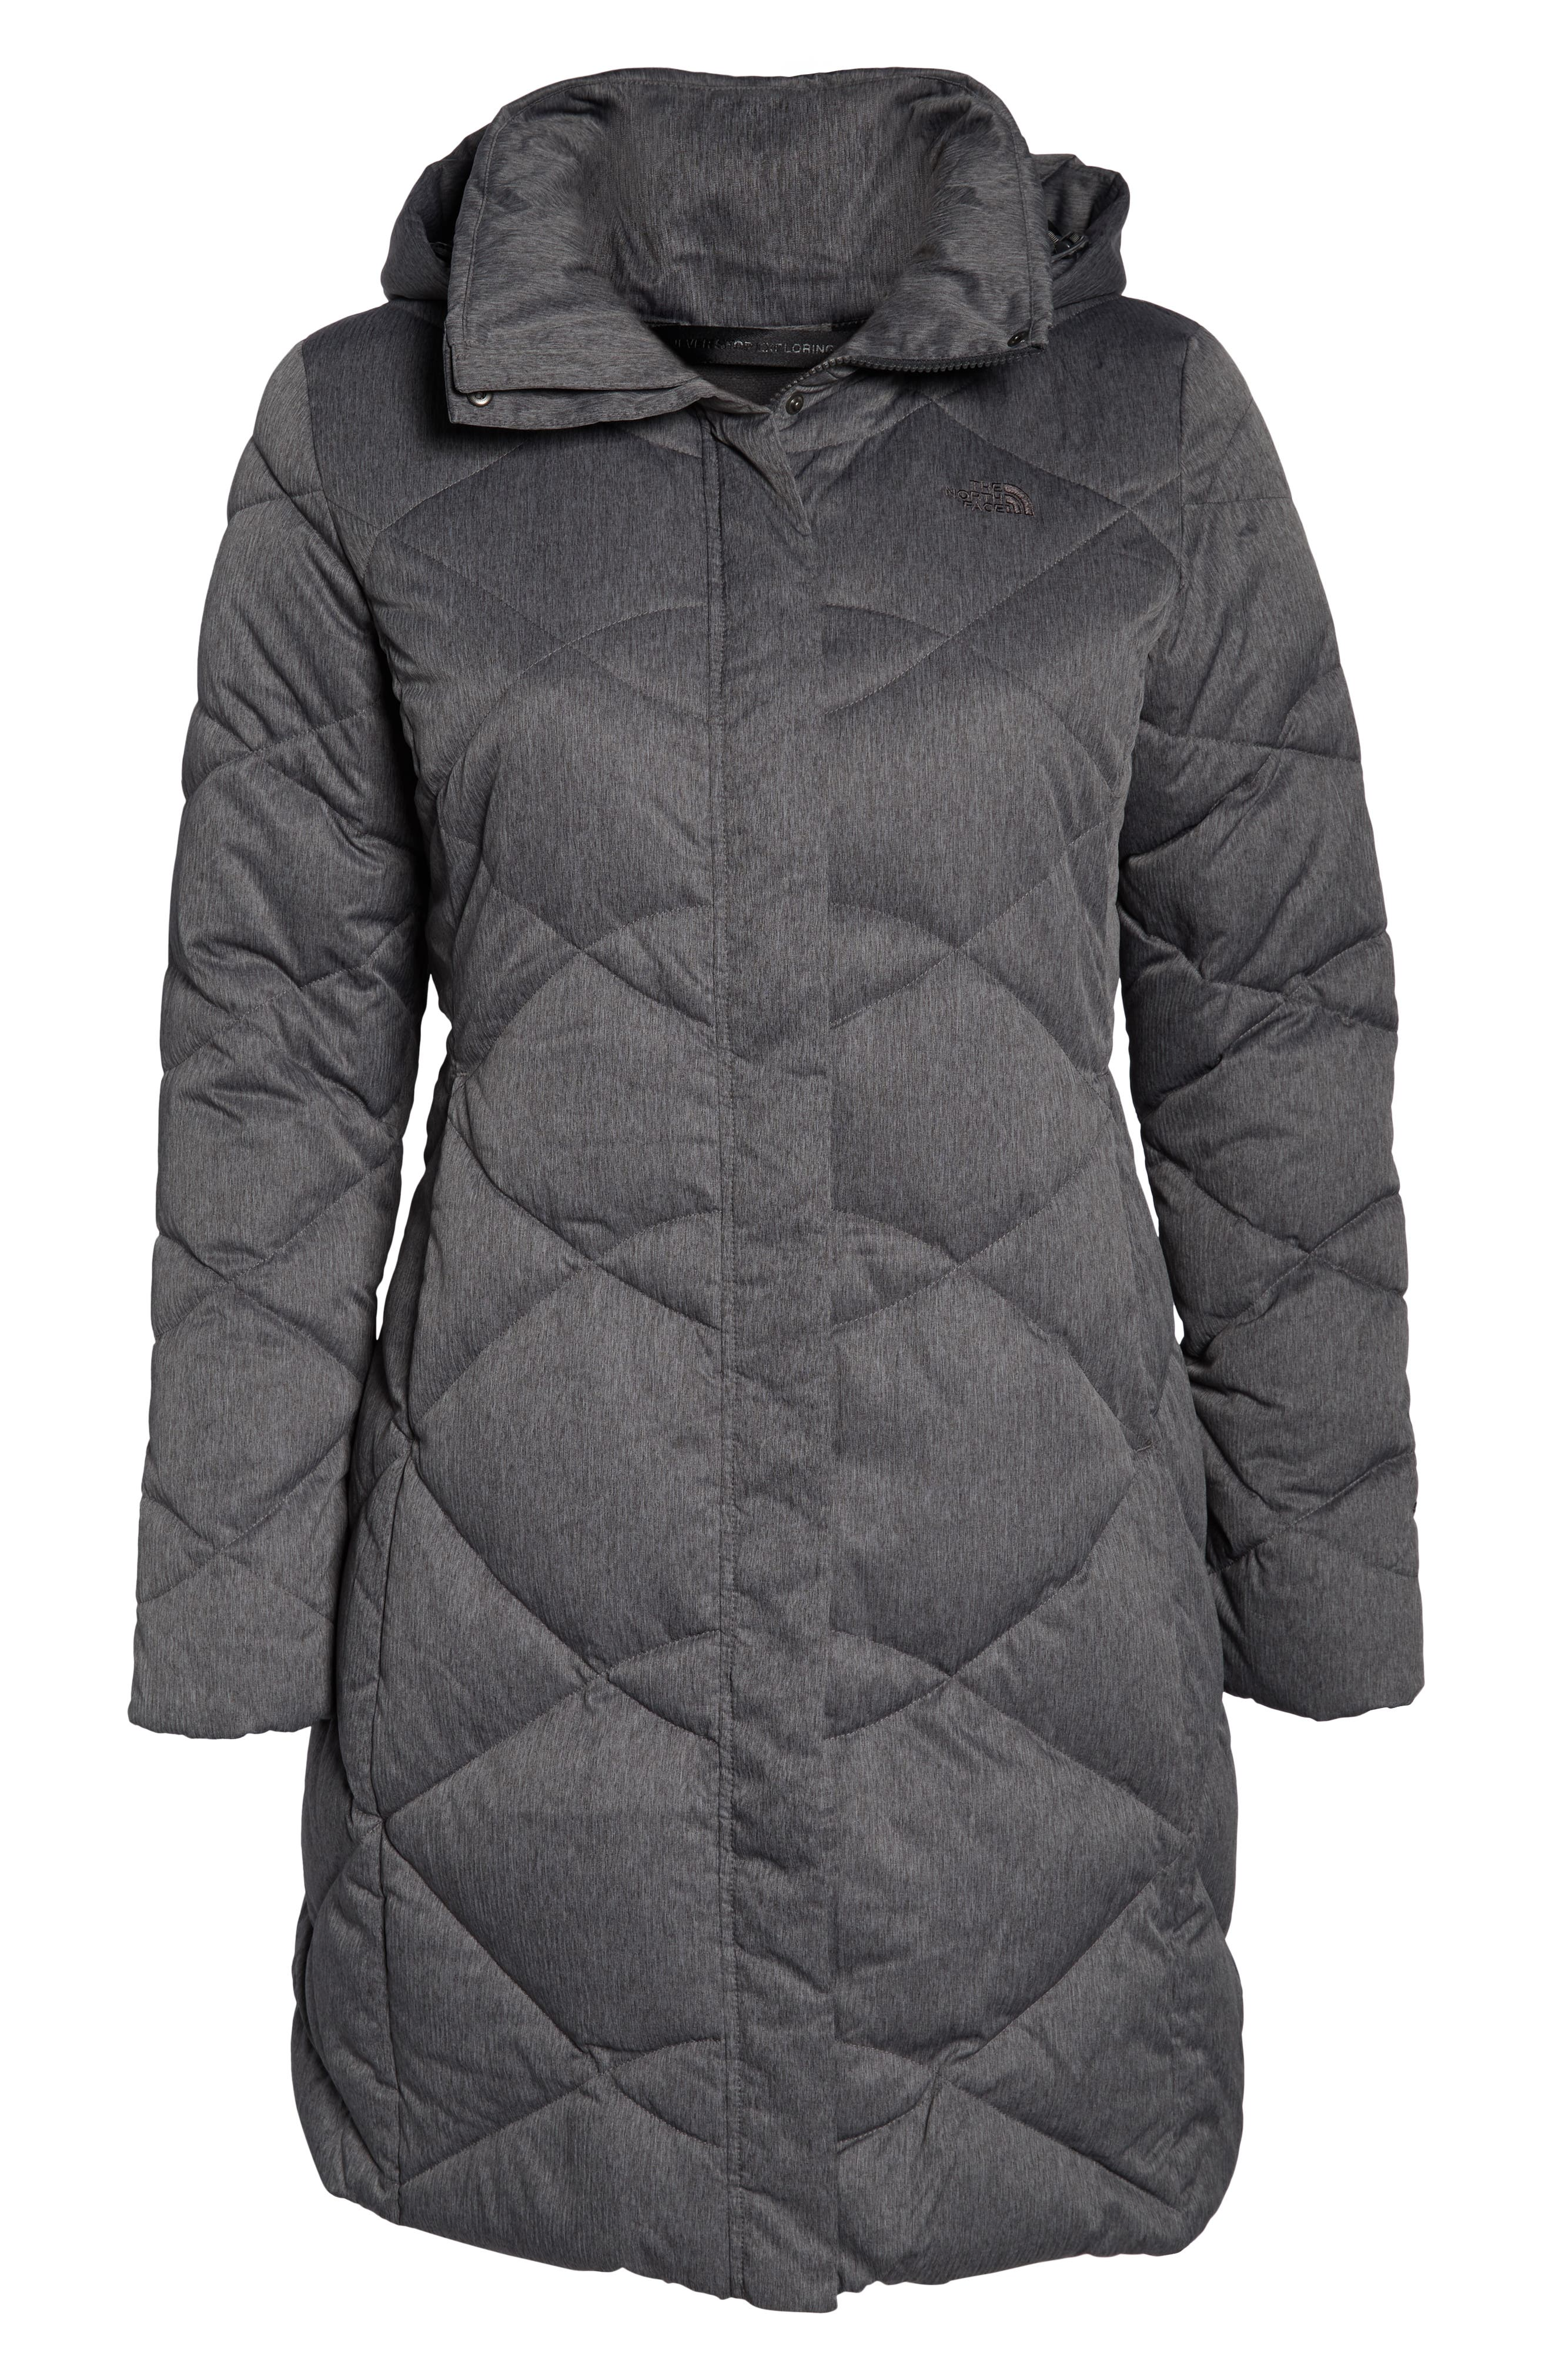 Miss Metro II Water Repellent 550 Fill Power Down Hooded Parka,                             Alternate thumbnail 12, color,                             TNF DARK GREY HEATHER